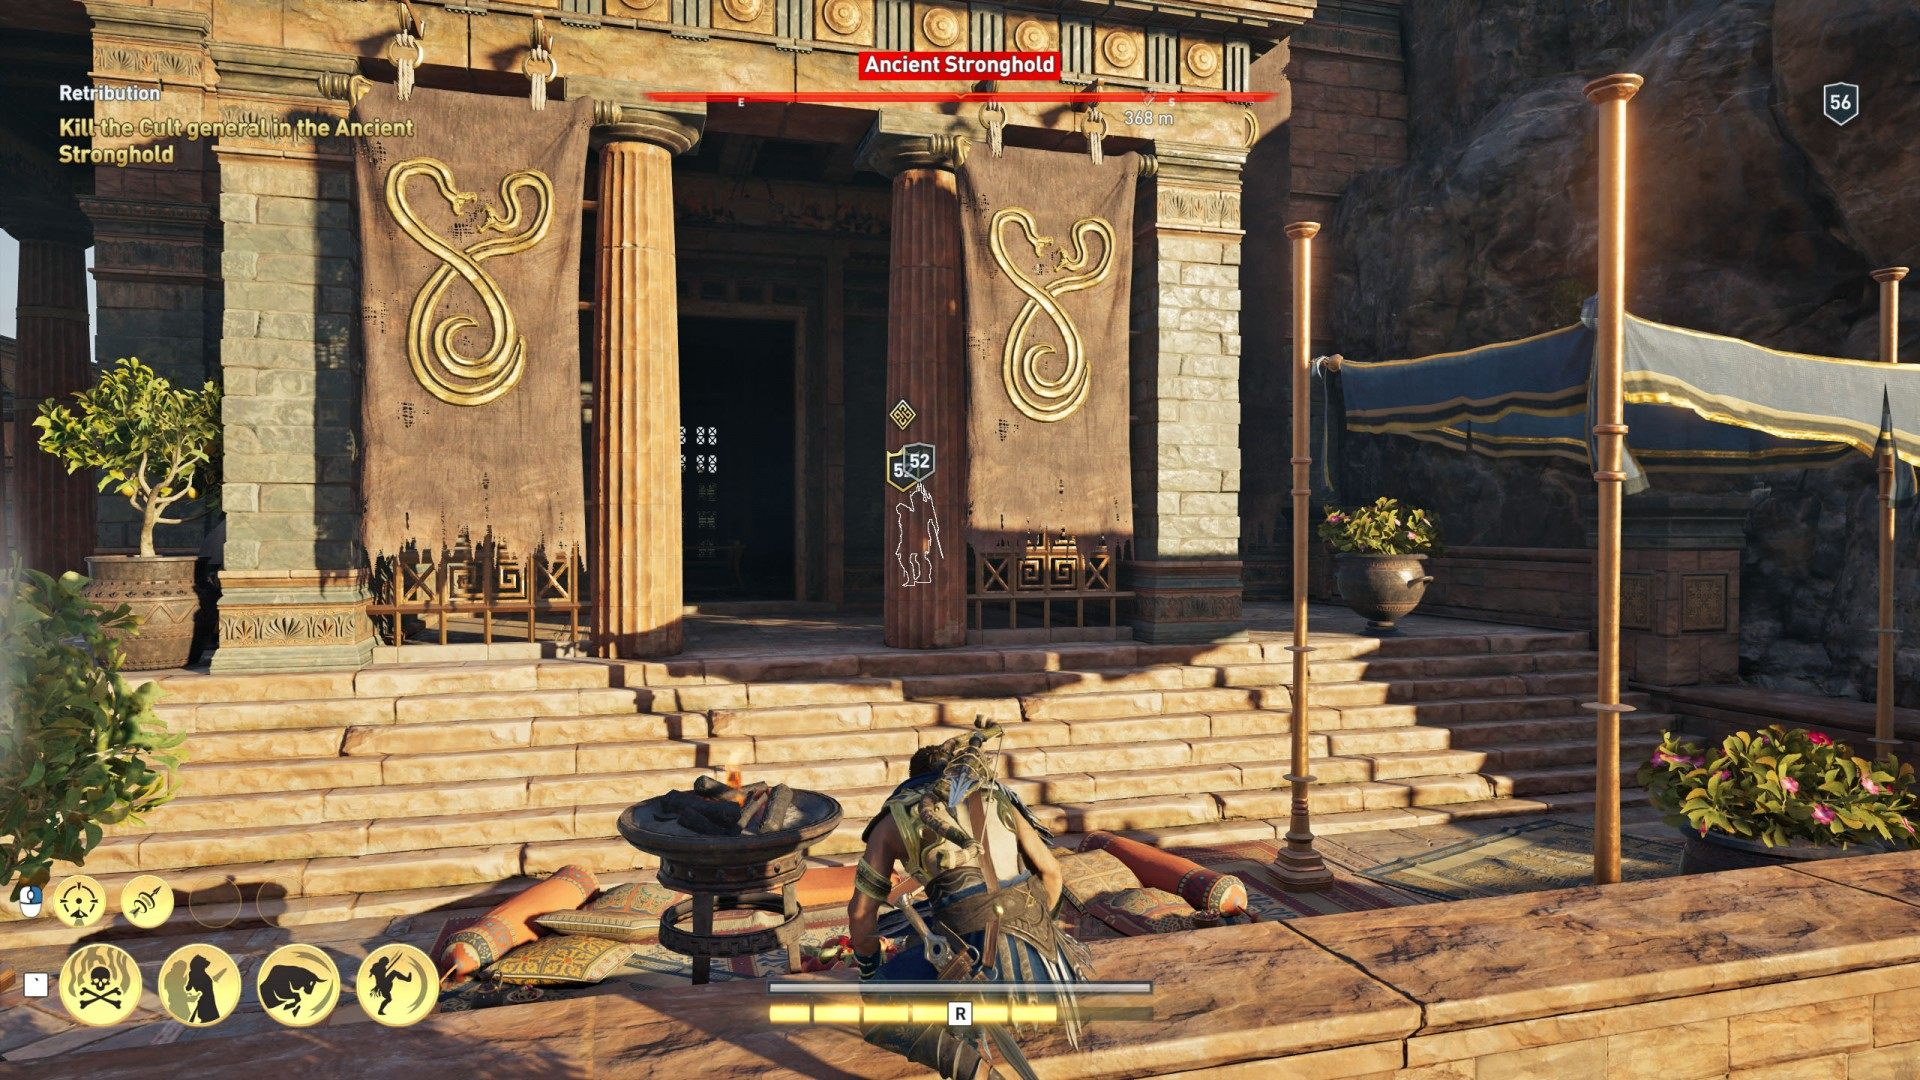 Retribution, Assassin's Creed Odyssey Quest